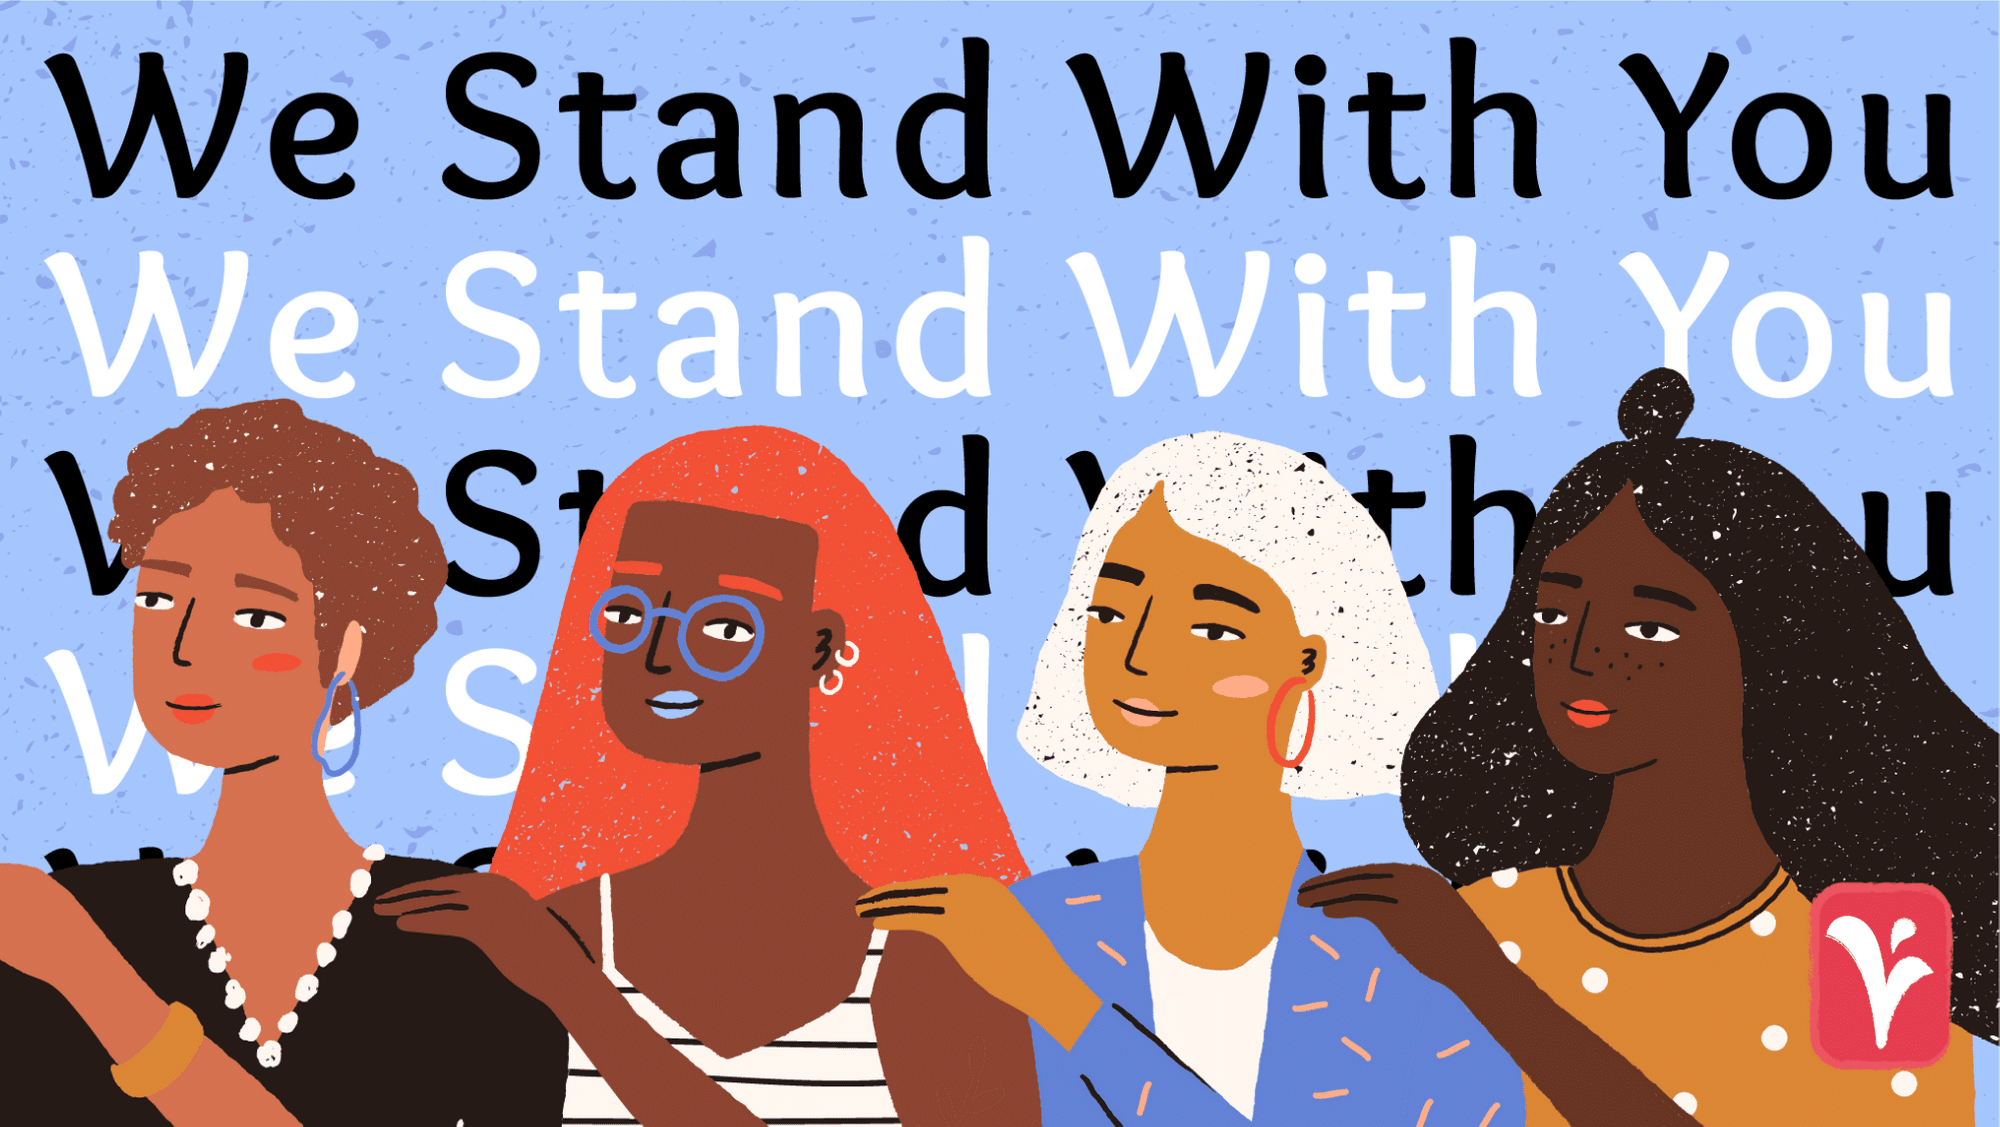 We stand with you text repeated with image of four women